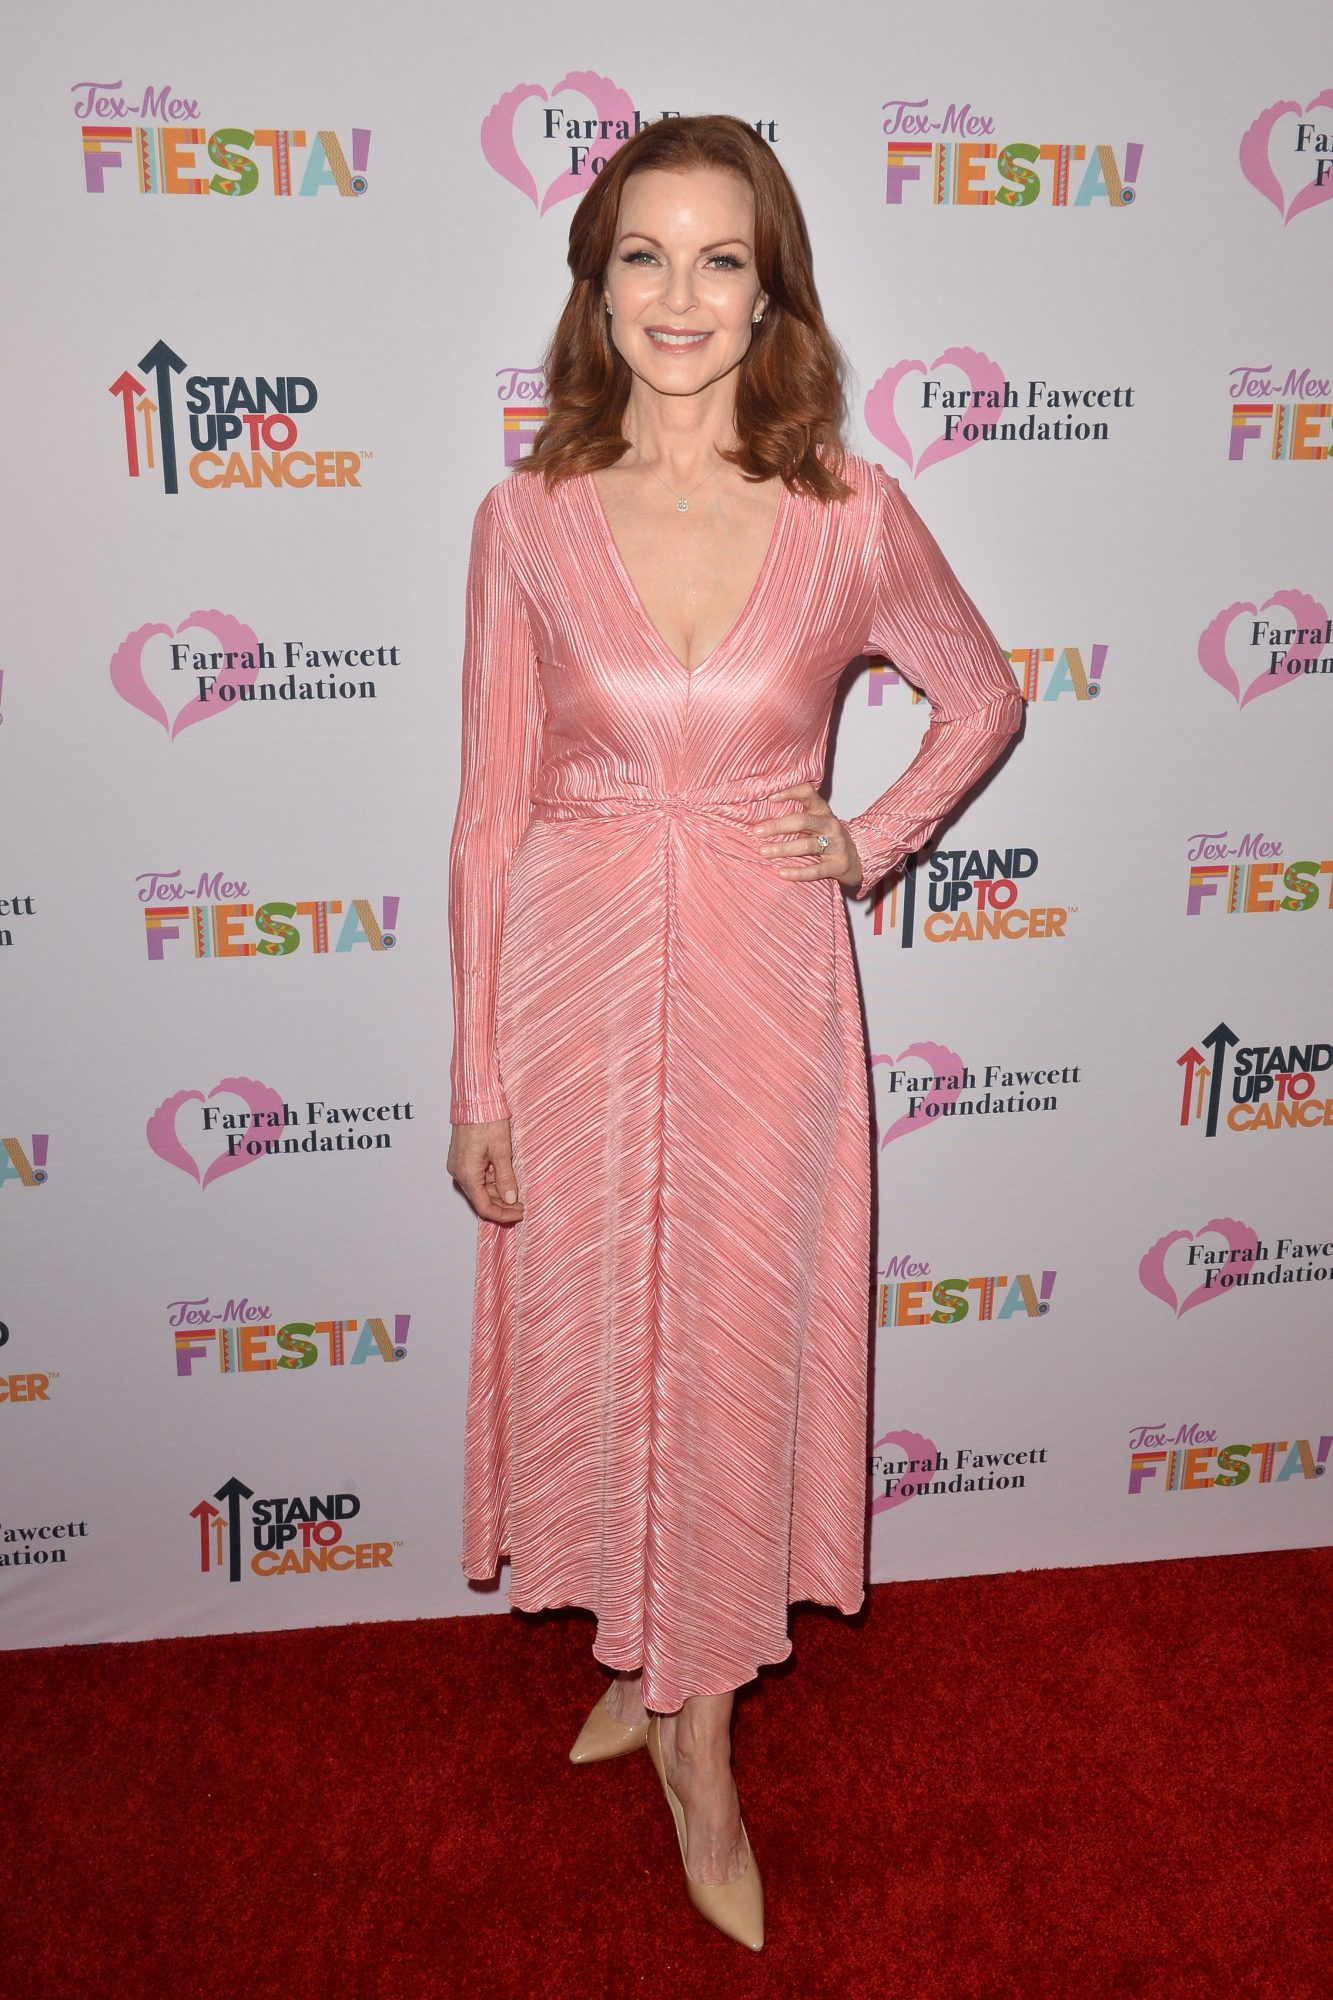 BEVERLY HILLS, CALIFORNIA - SEPTEMBER 06: Marcia Cross arrives at The Farrah Fawcett Foundation's Tex-Mex Fiesta at Wallis Annenberg Center for the Performing Arts on September 06, 2019 in Beverly Hills, California. (Photo by Jerod Harris/Getty Images)